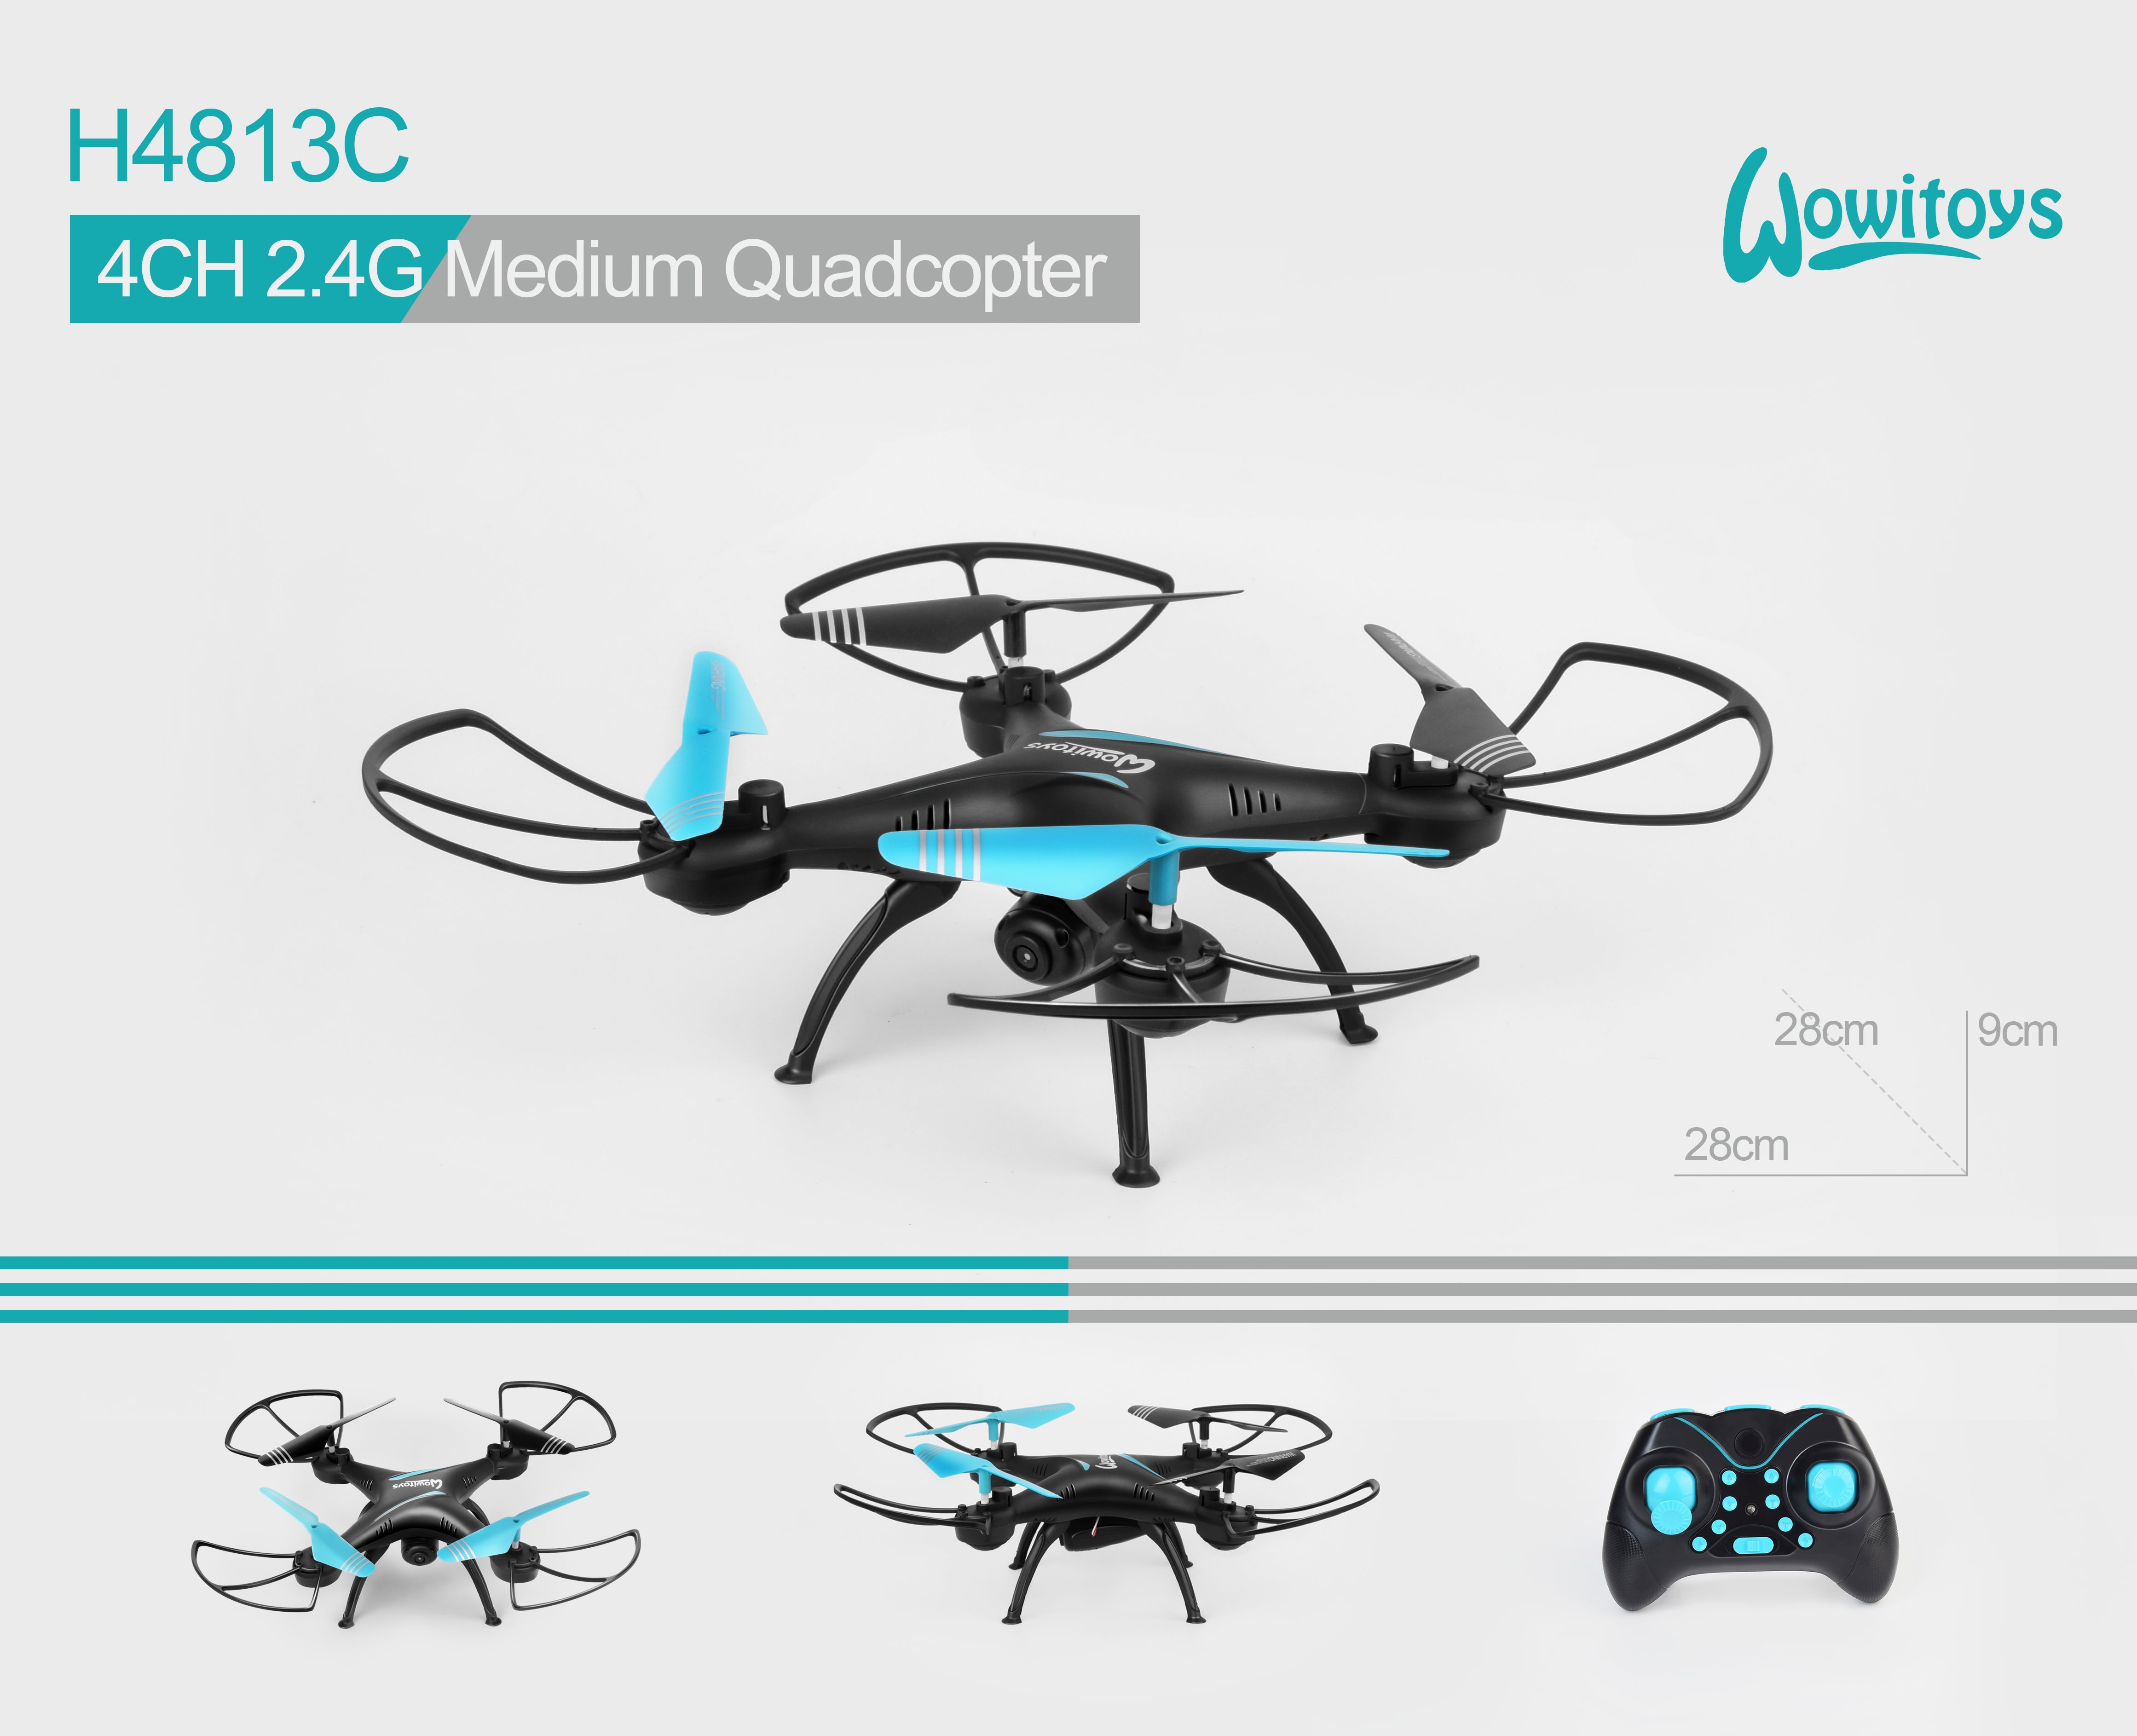 4CH 2.4G Middle Quadcopter with 1080P HD camera